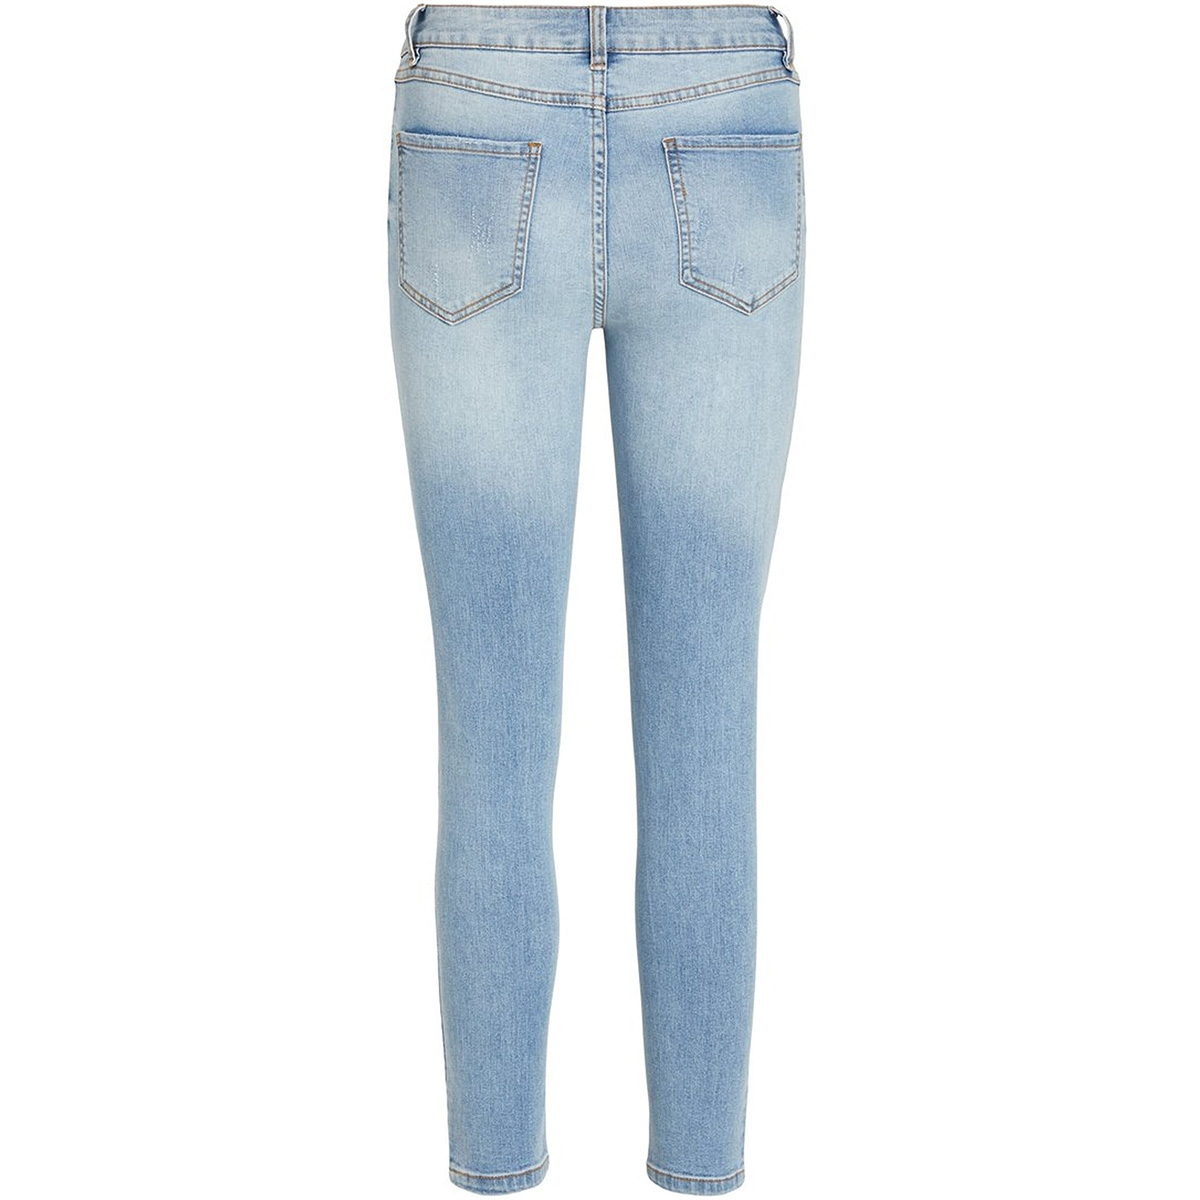 viekko rwsk 7/8 jeans/su - noos 14055696 vila jeans light blue/enzyme was